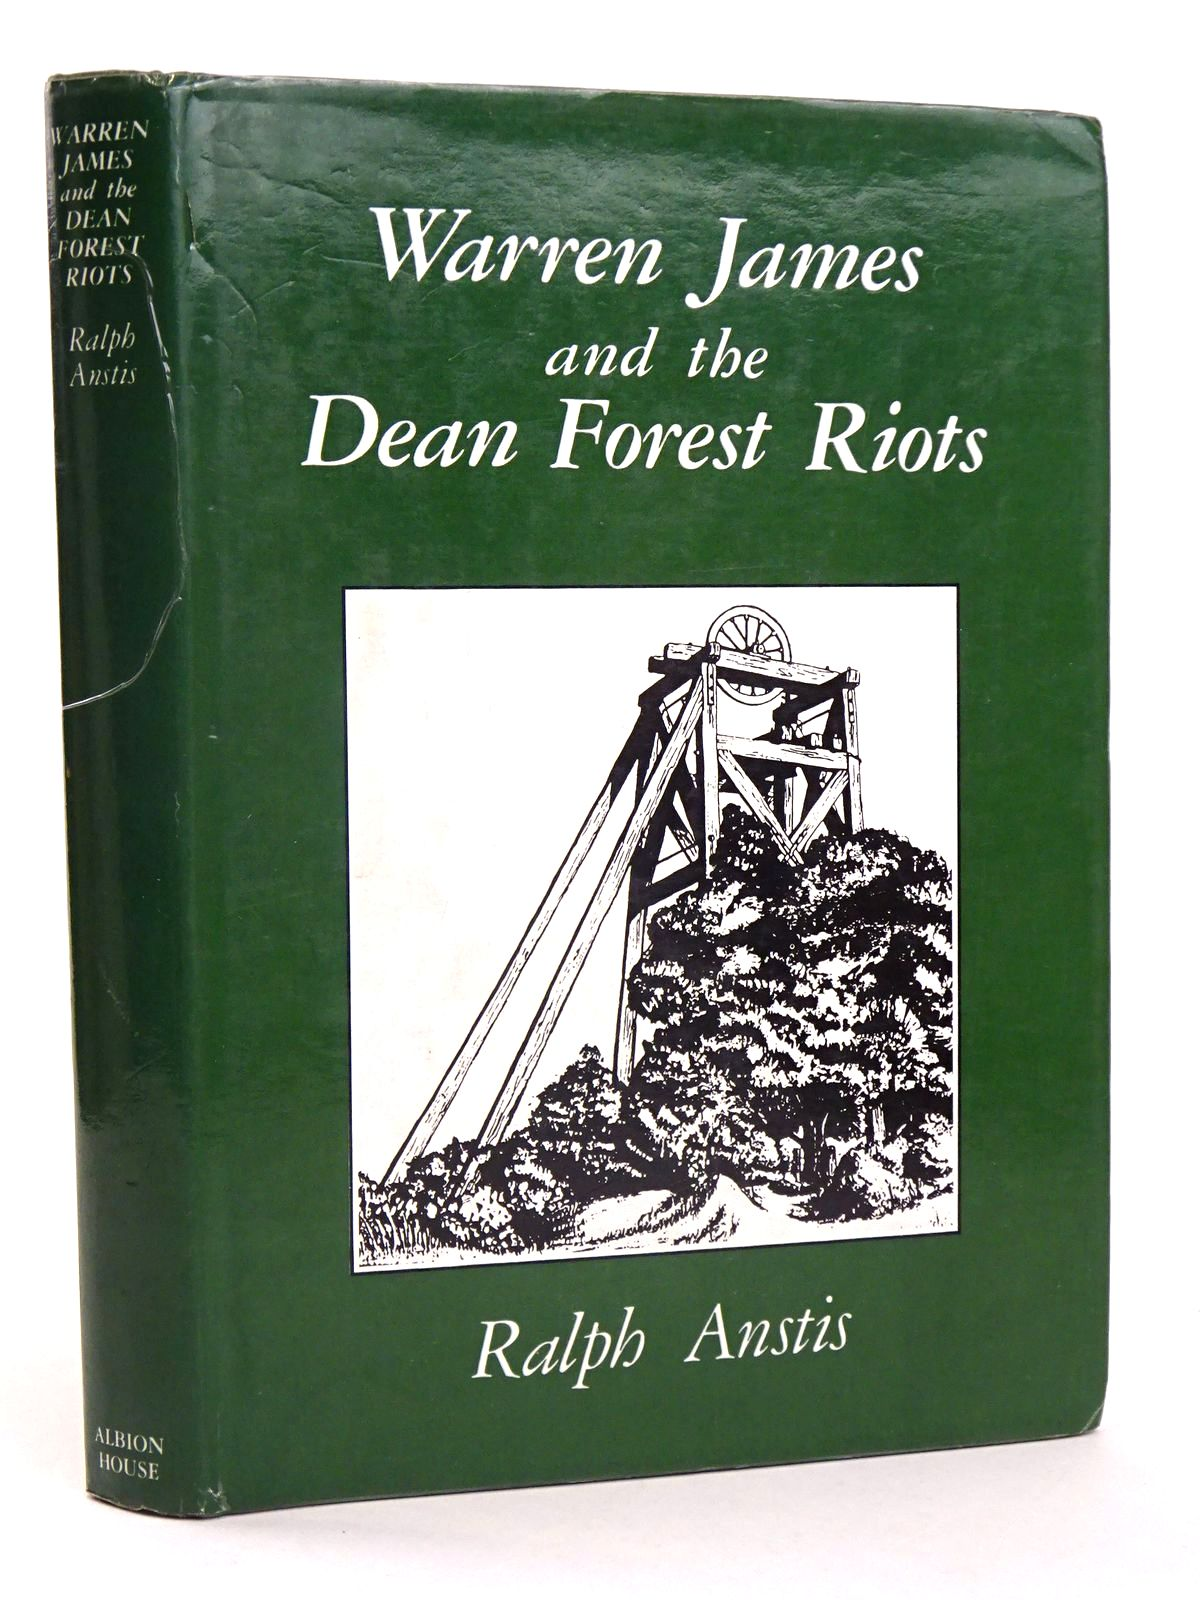 Photo of WARREN JAMES AND THE DEAN FOREST RIOTS written by Anstis, Ralph published by Albion House (STOCK CODE: 1818554)  for sale by Stella & Rose's Books